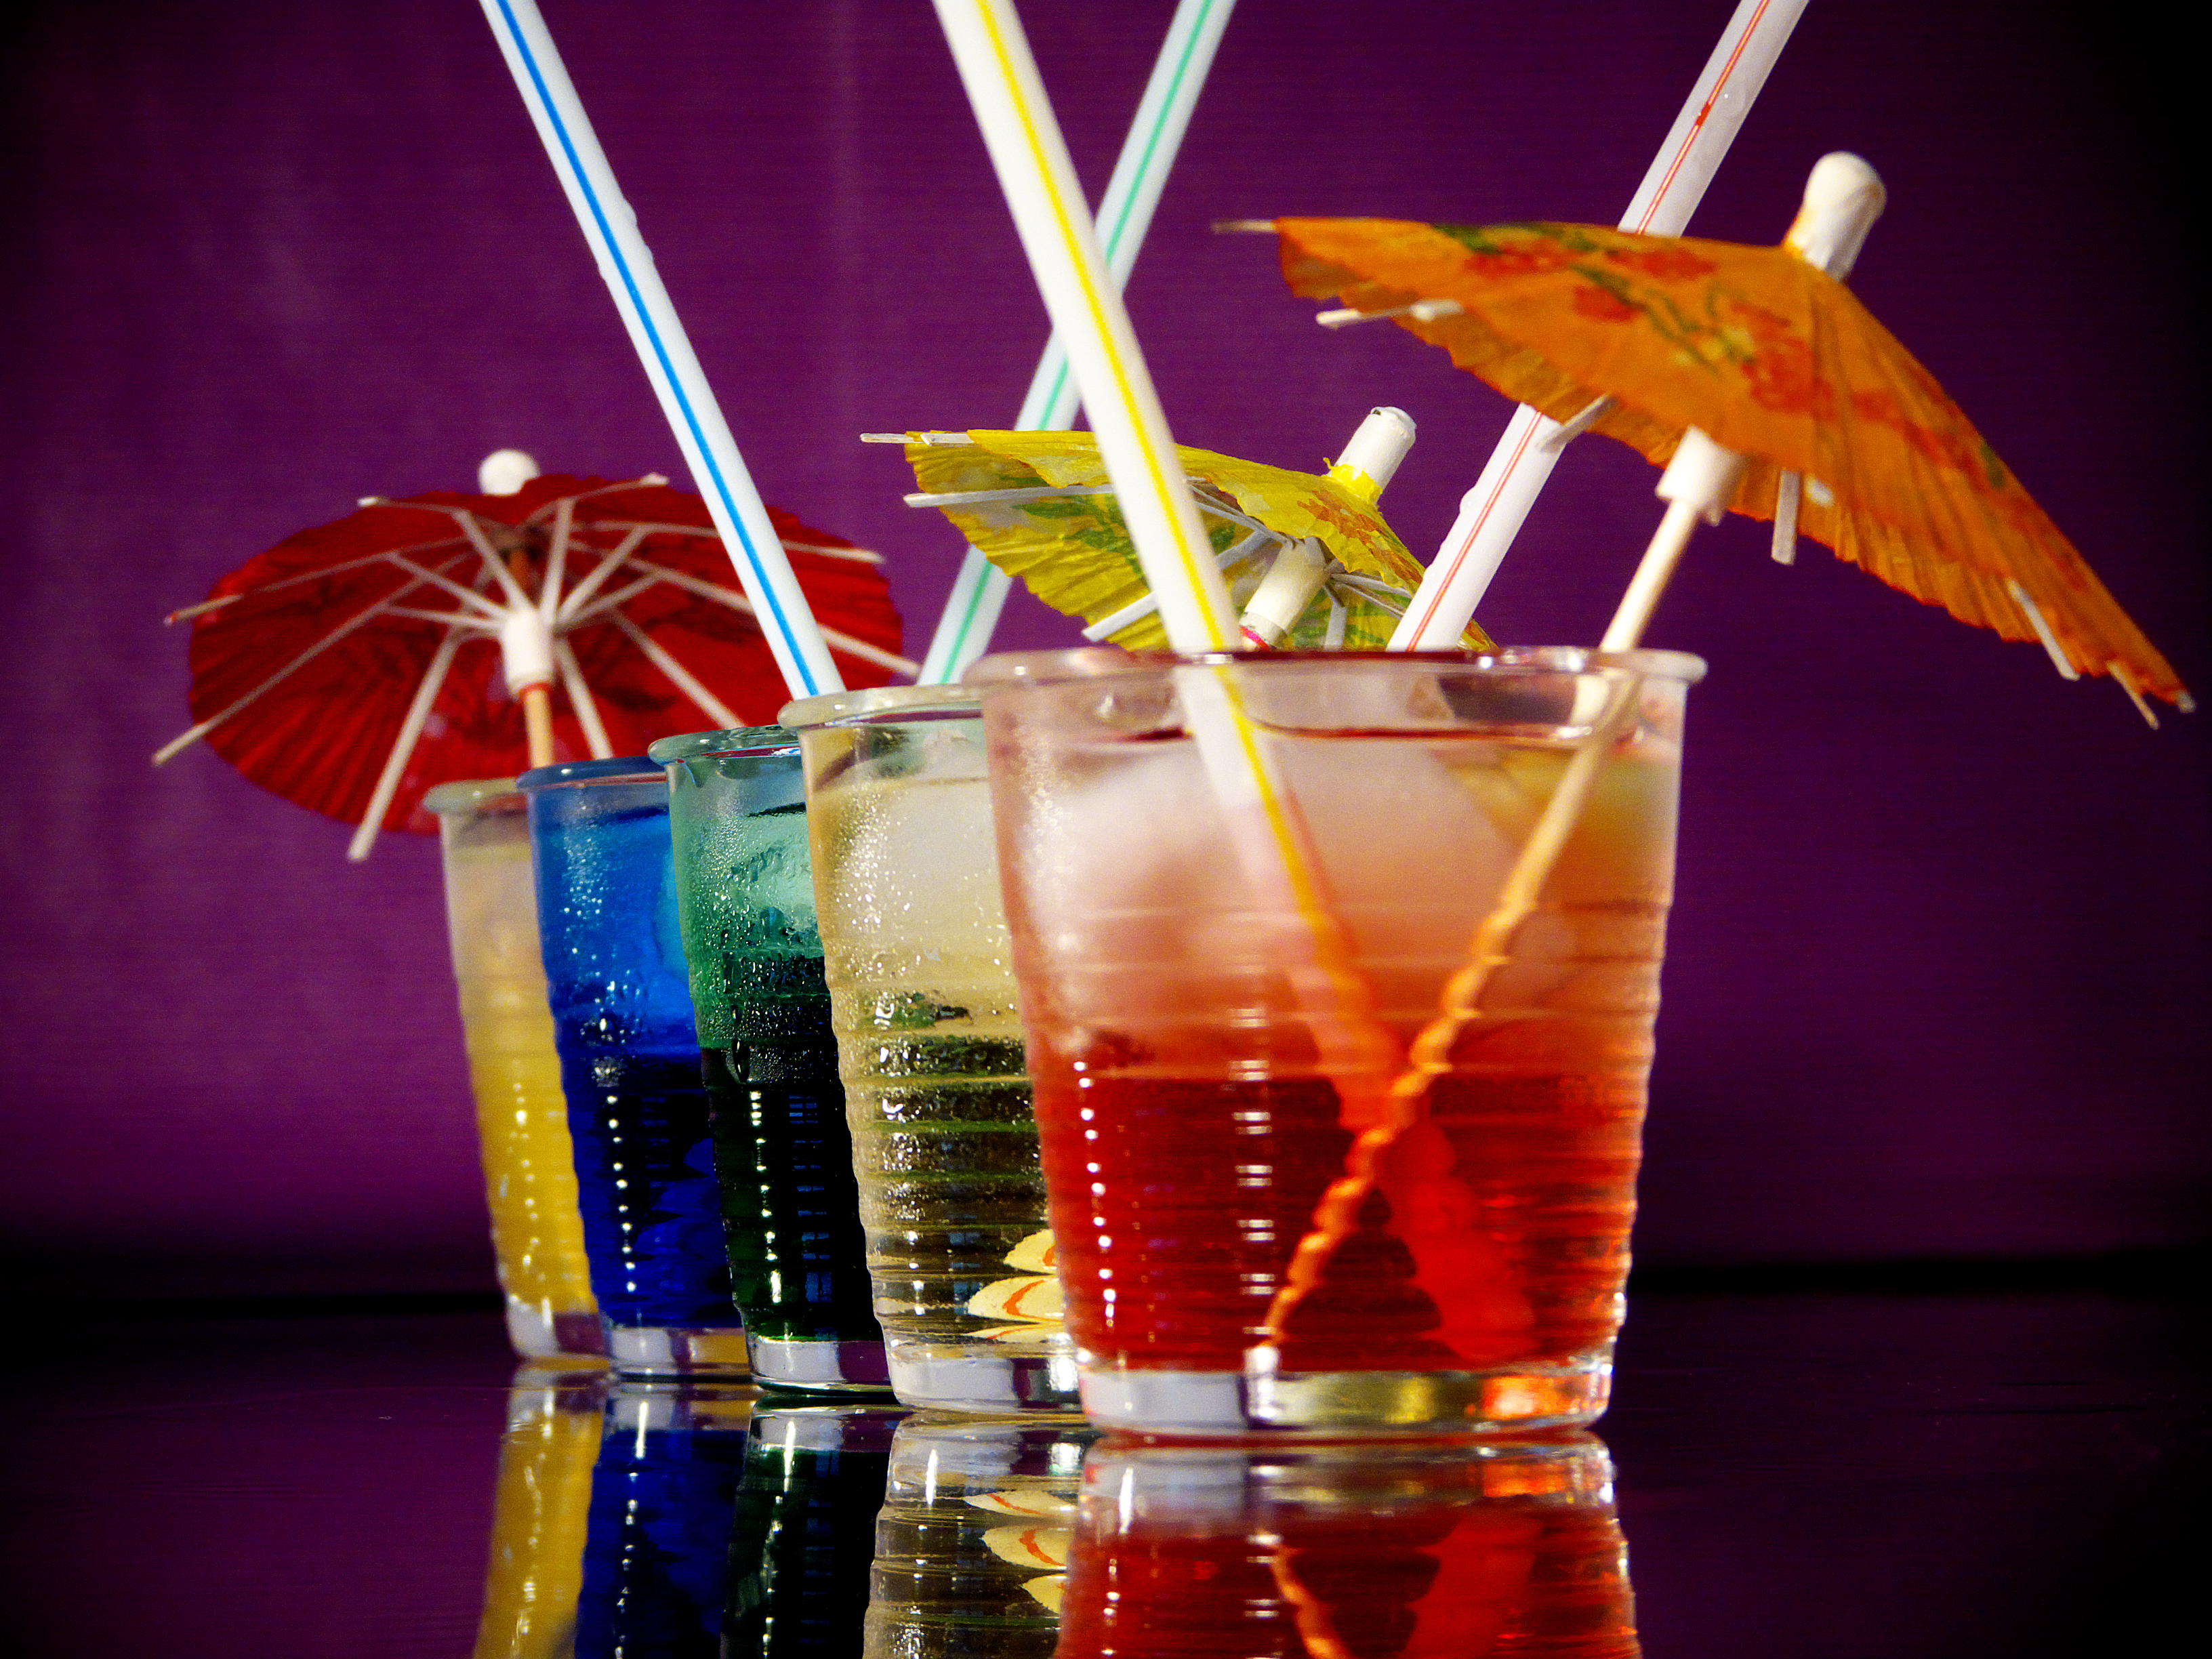 Google images for Cocktail 51